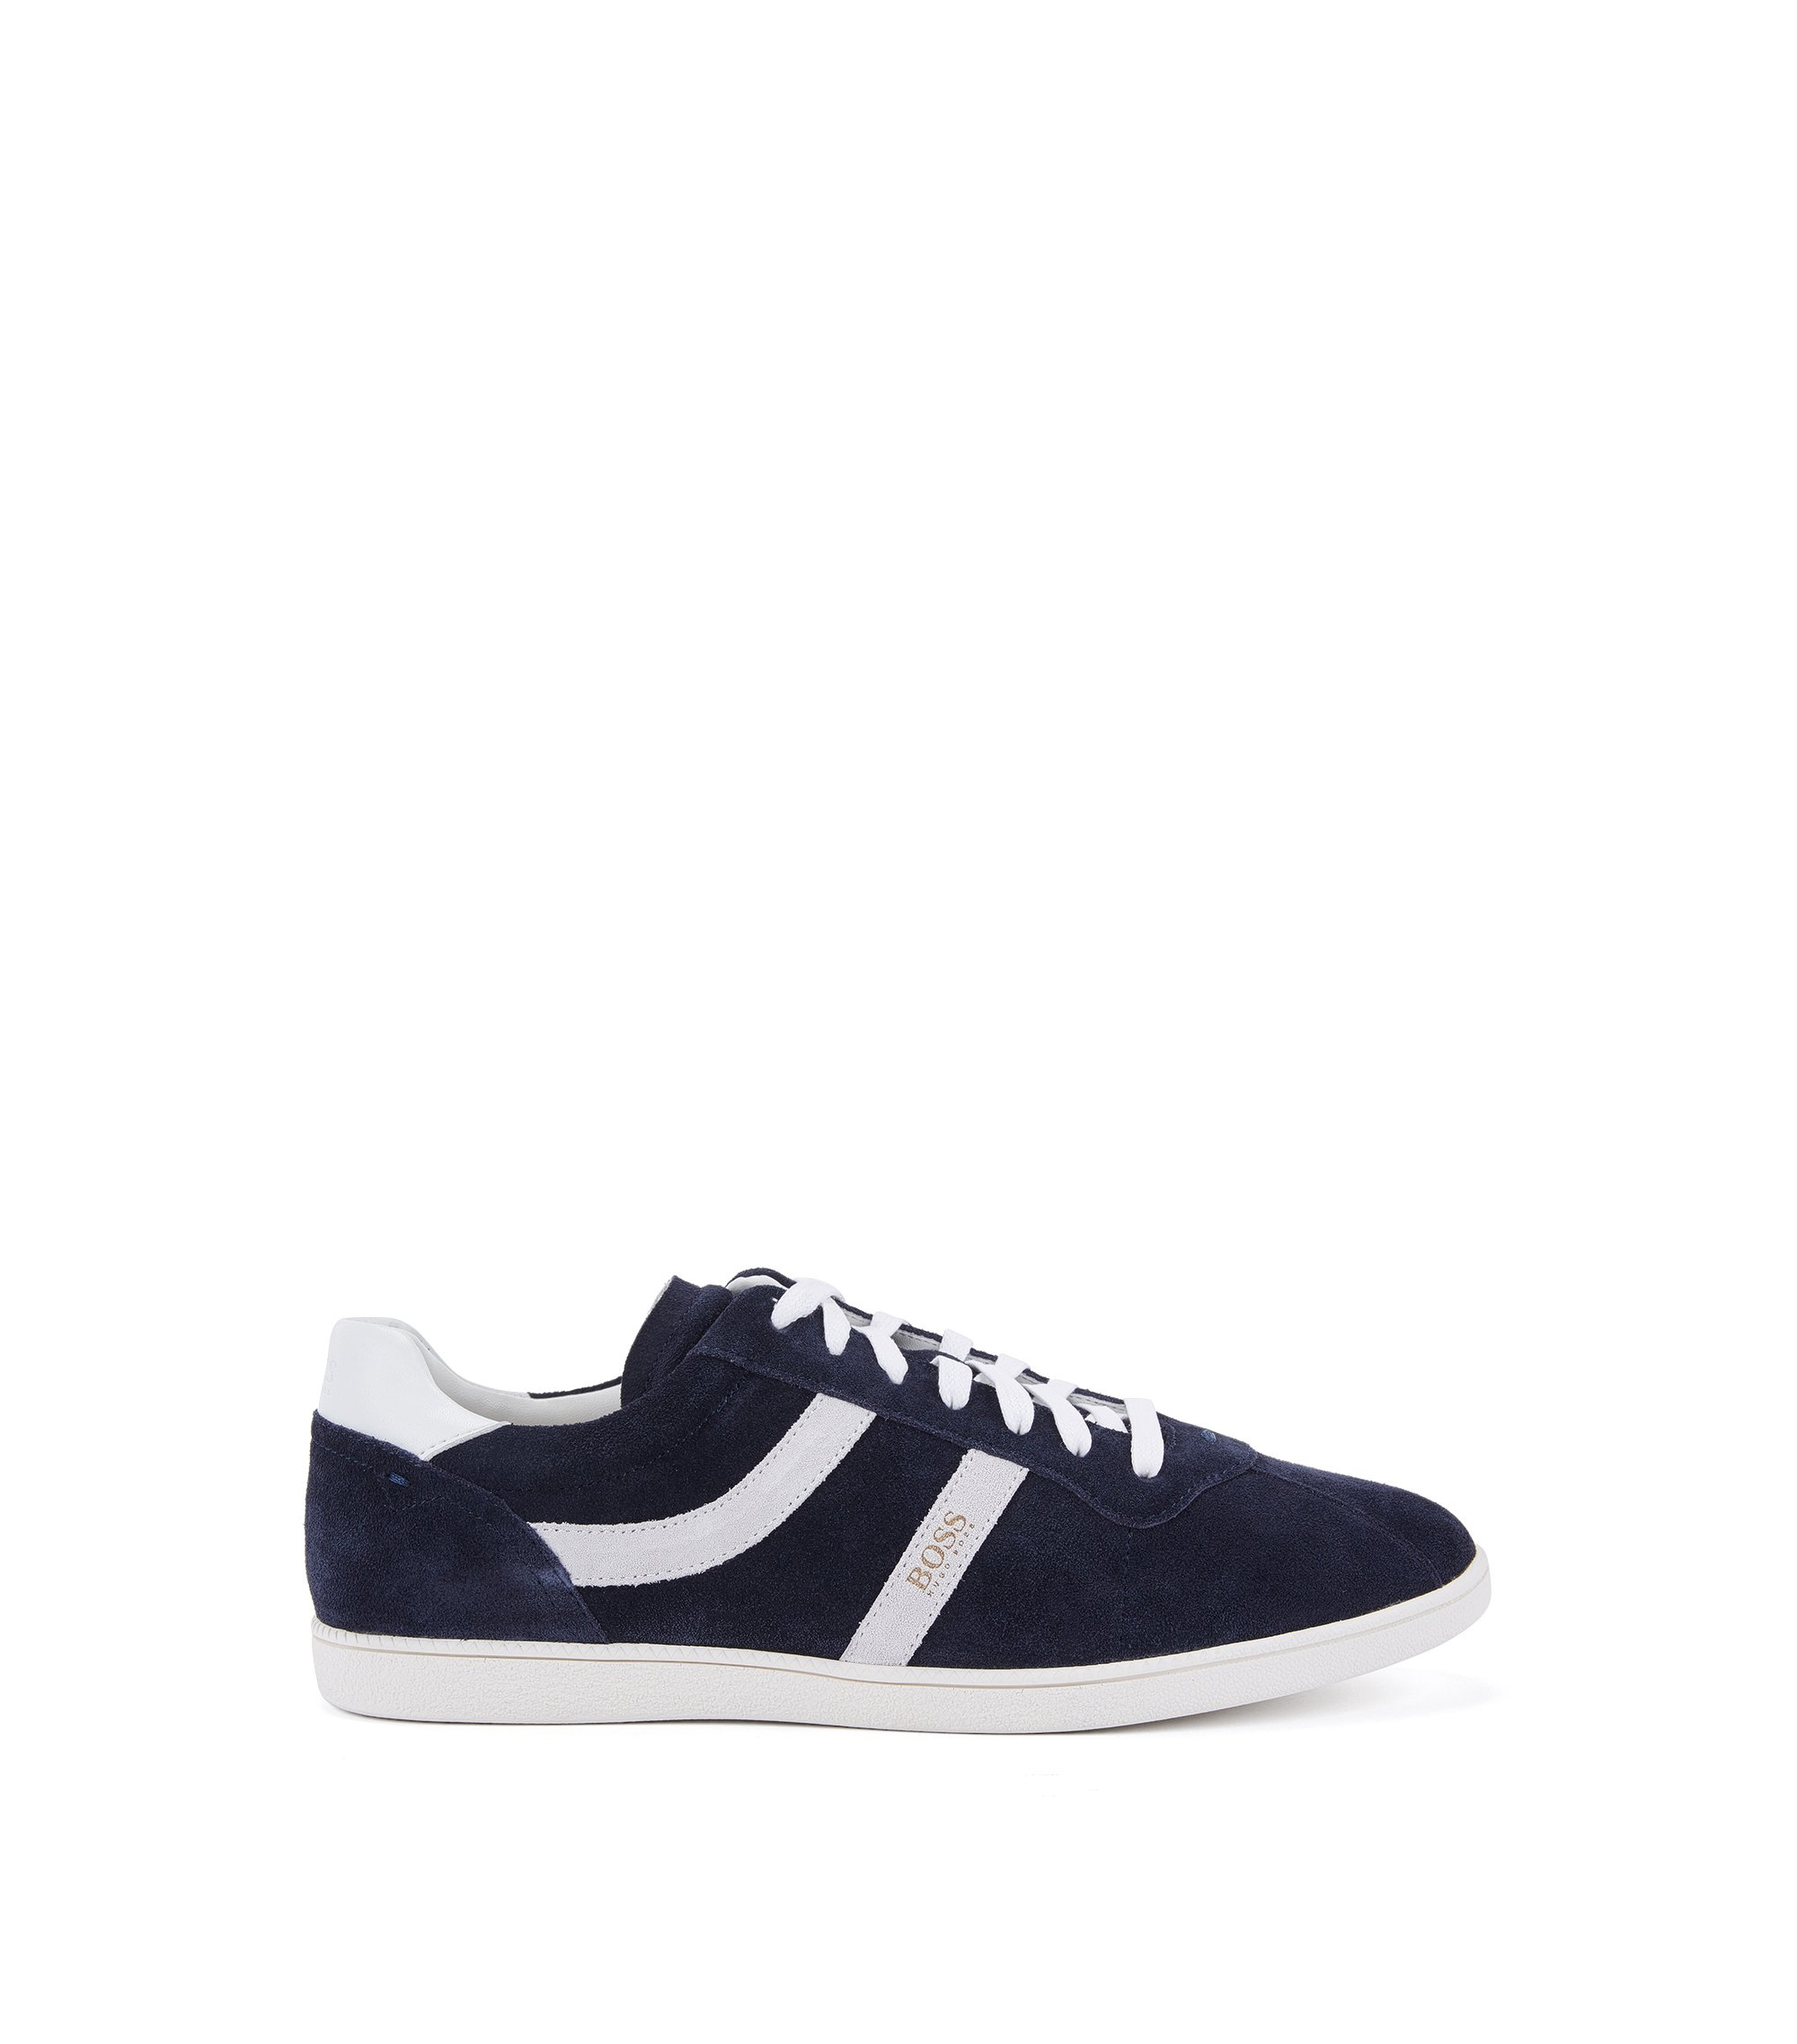 Sneakers low-top in pelle scamosciata con righe laterali, Blu scuro